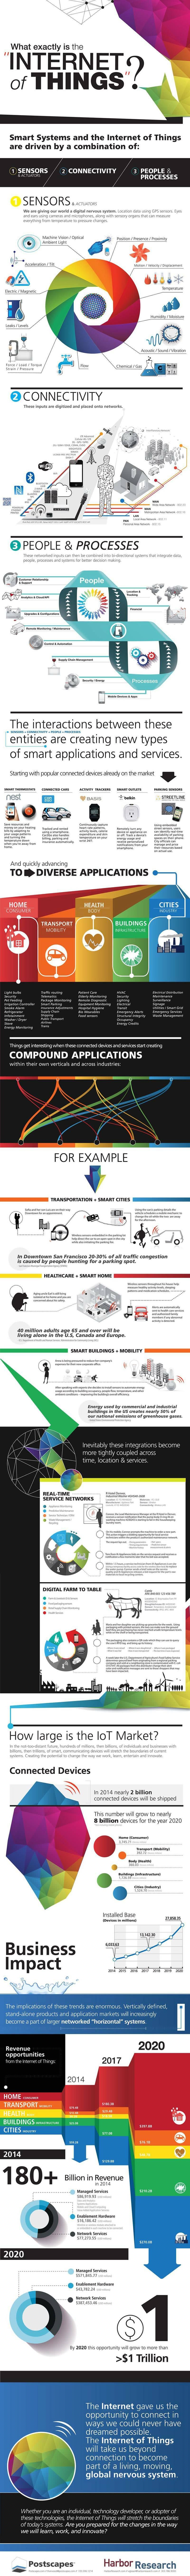 The internet of things (IoT) is a concept confusing to many, but soon to be consumed by all. For those looking a little lost, this infographic should explain it all.